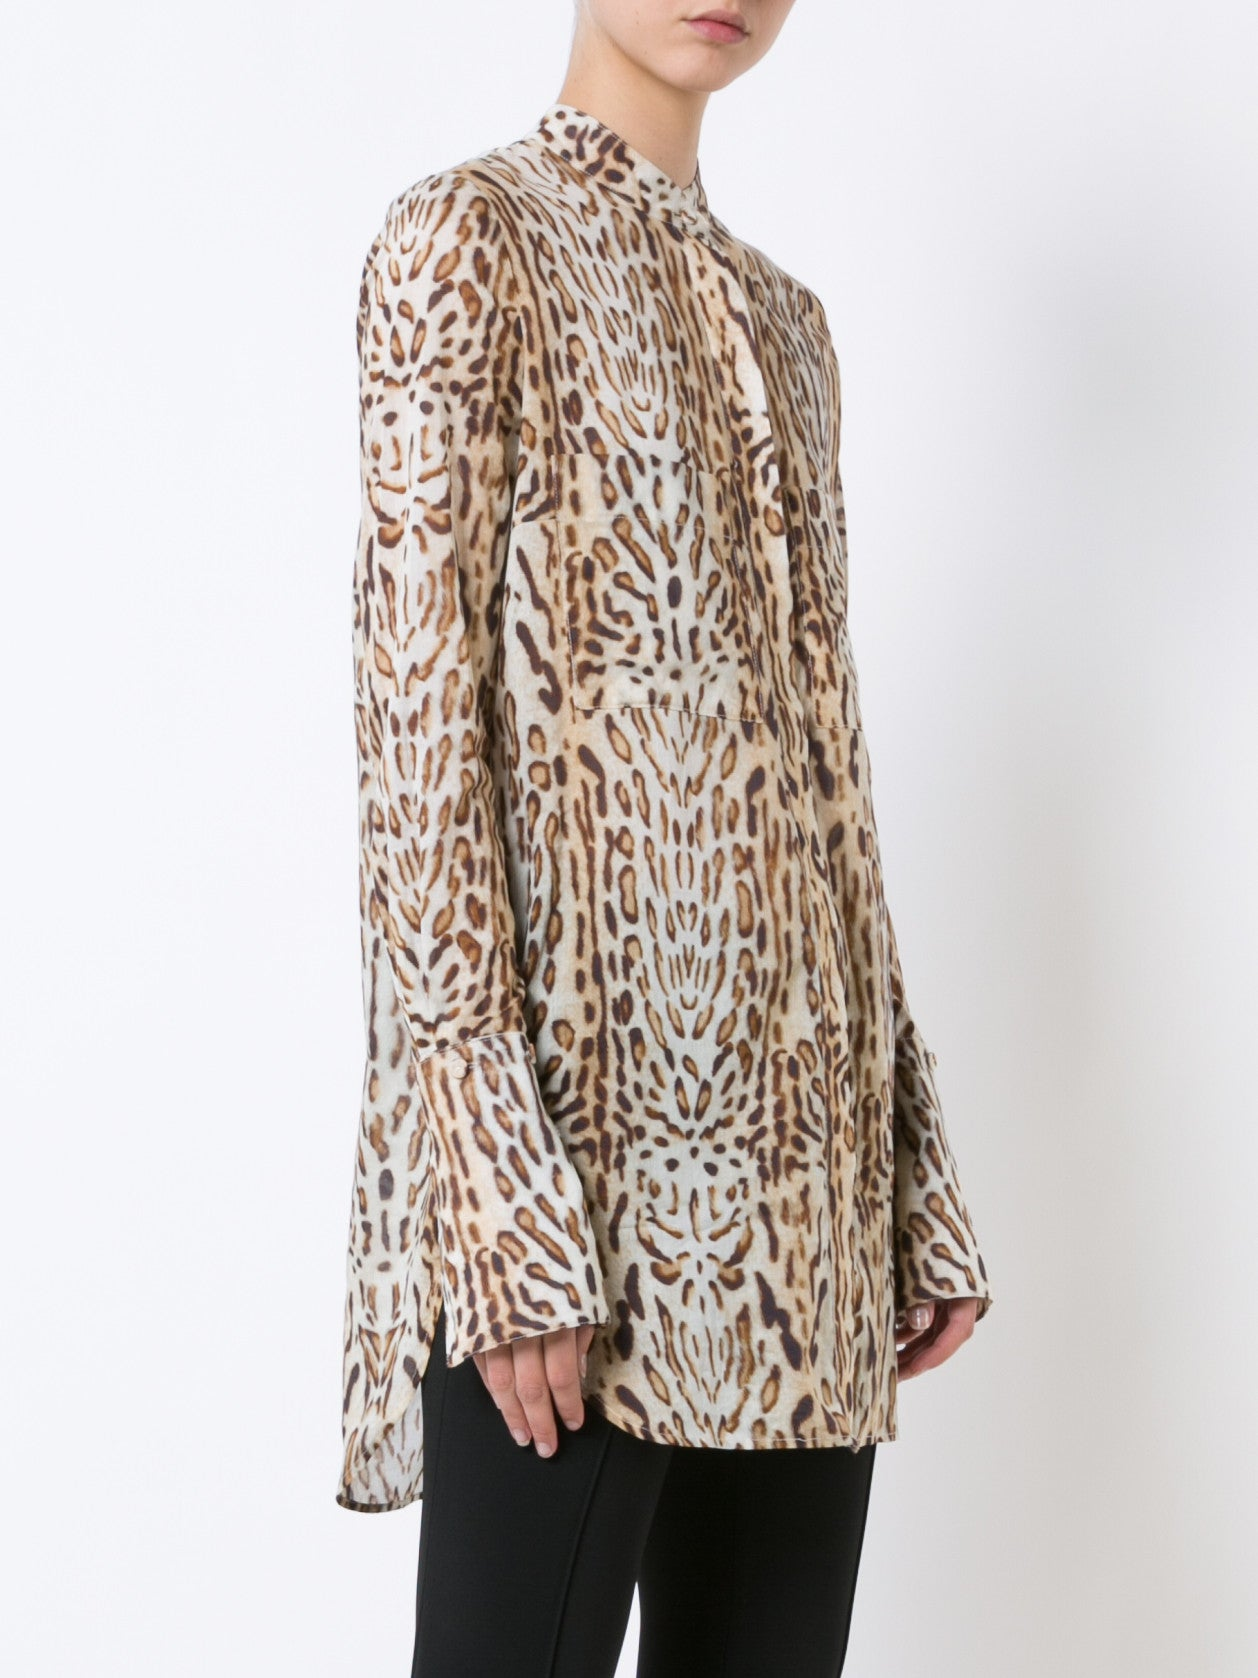 Ocelot Printed Cotton Voile Blouse with Stand Collar